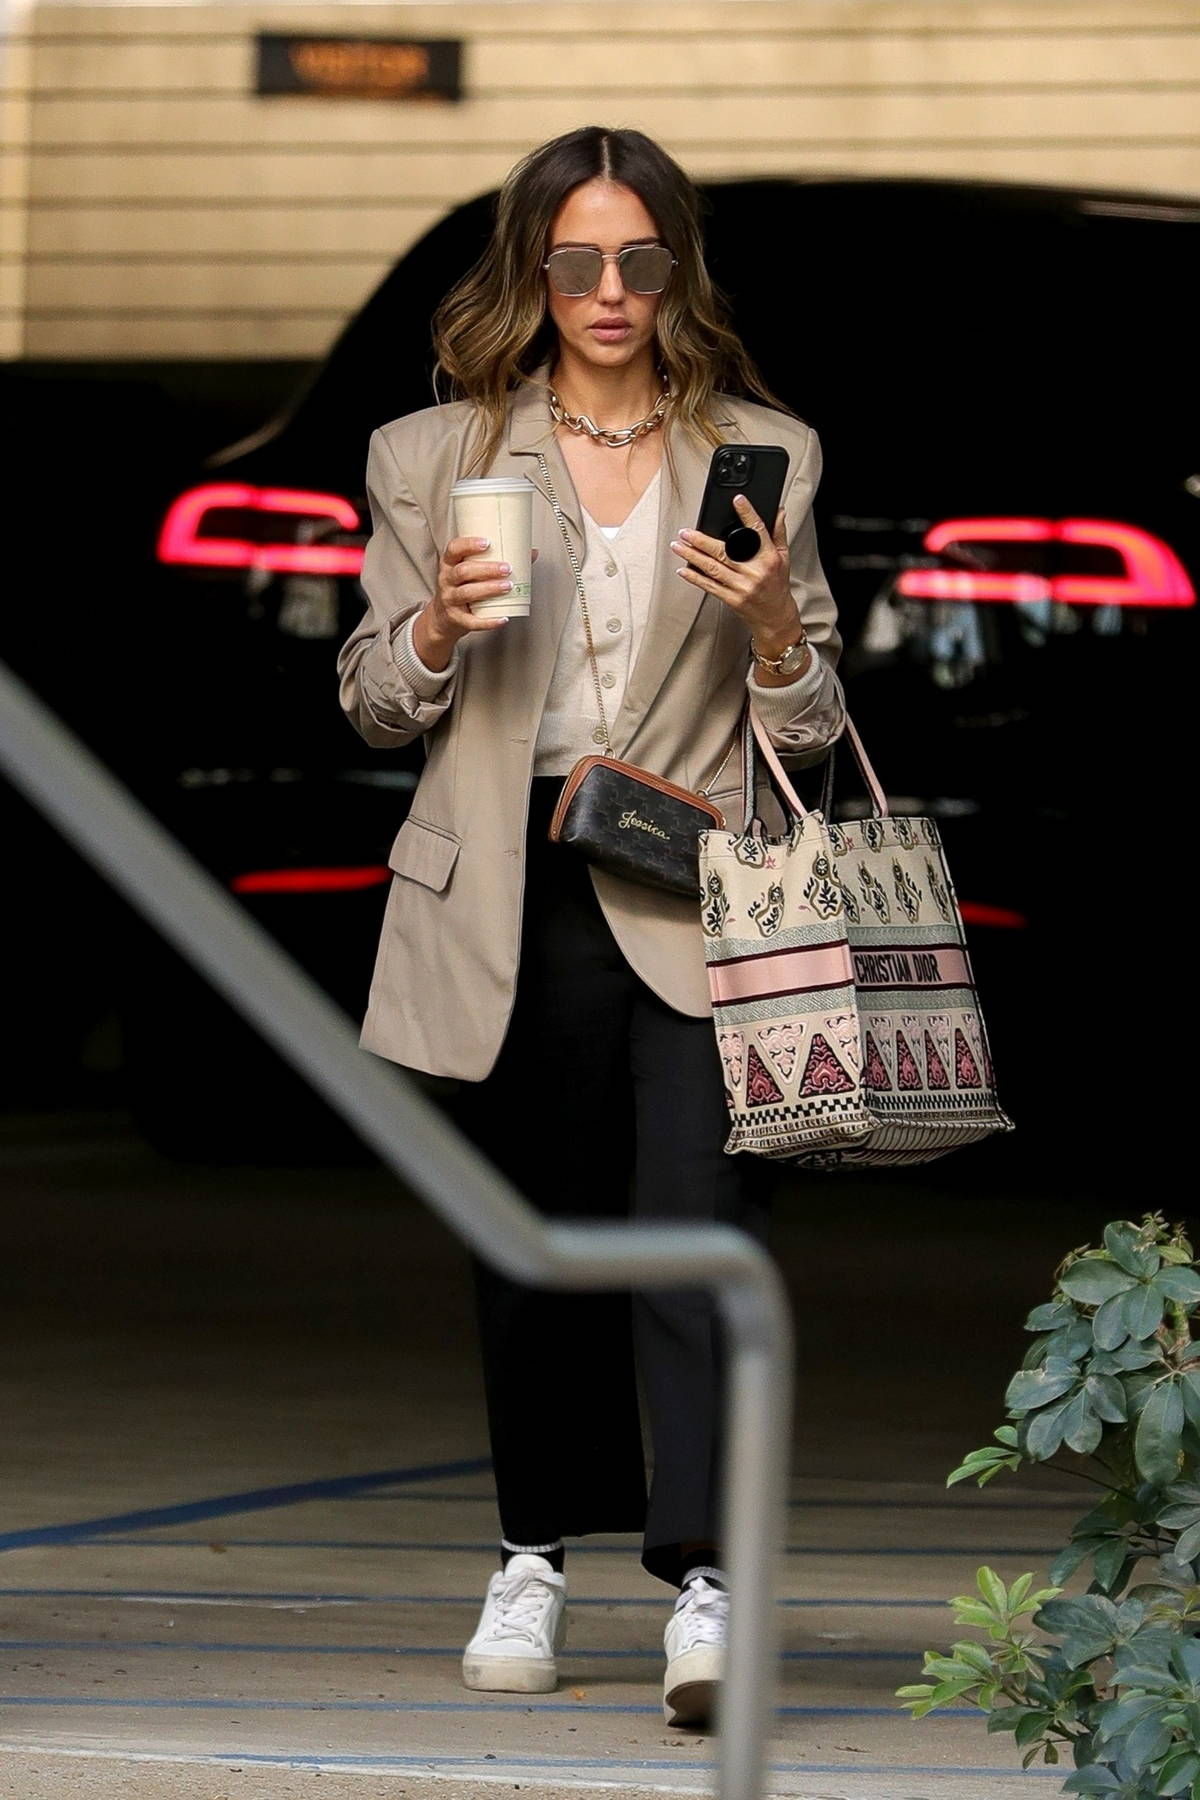 Jessica Alba looks stylish in a beige blazer as she arrives at her office in Los Angeles